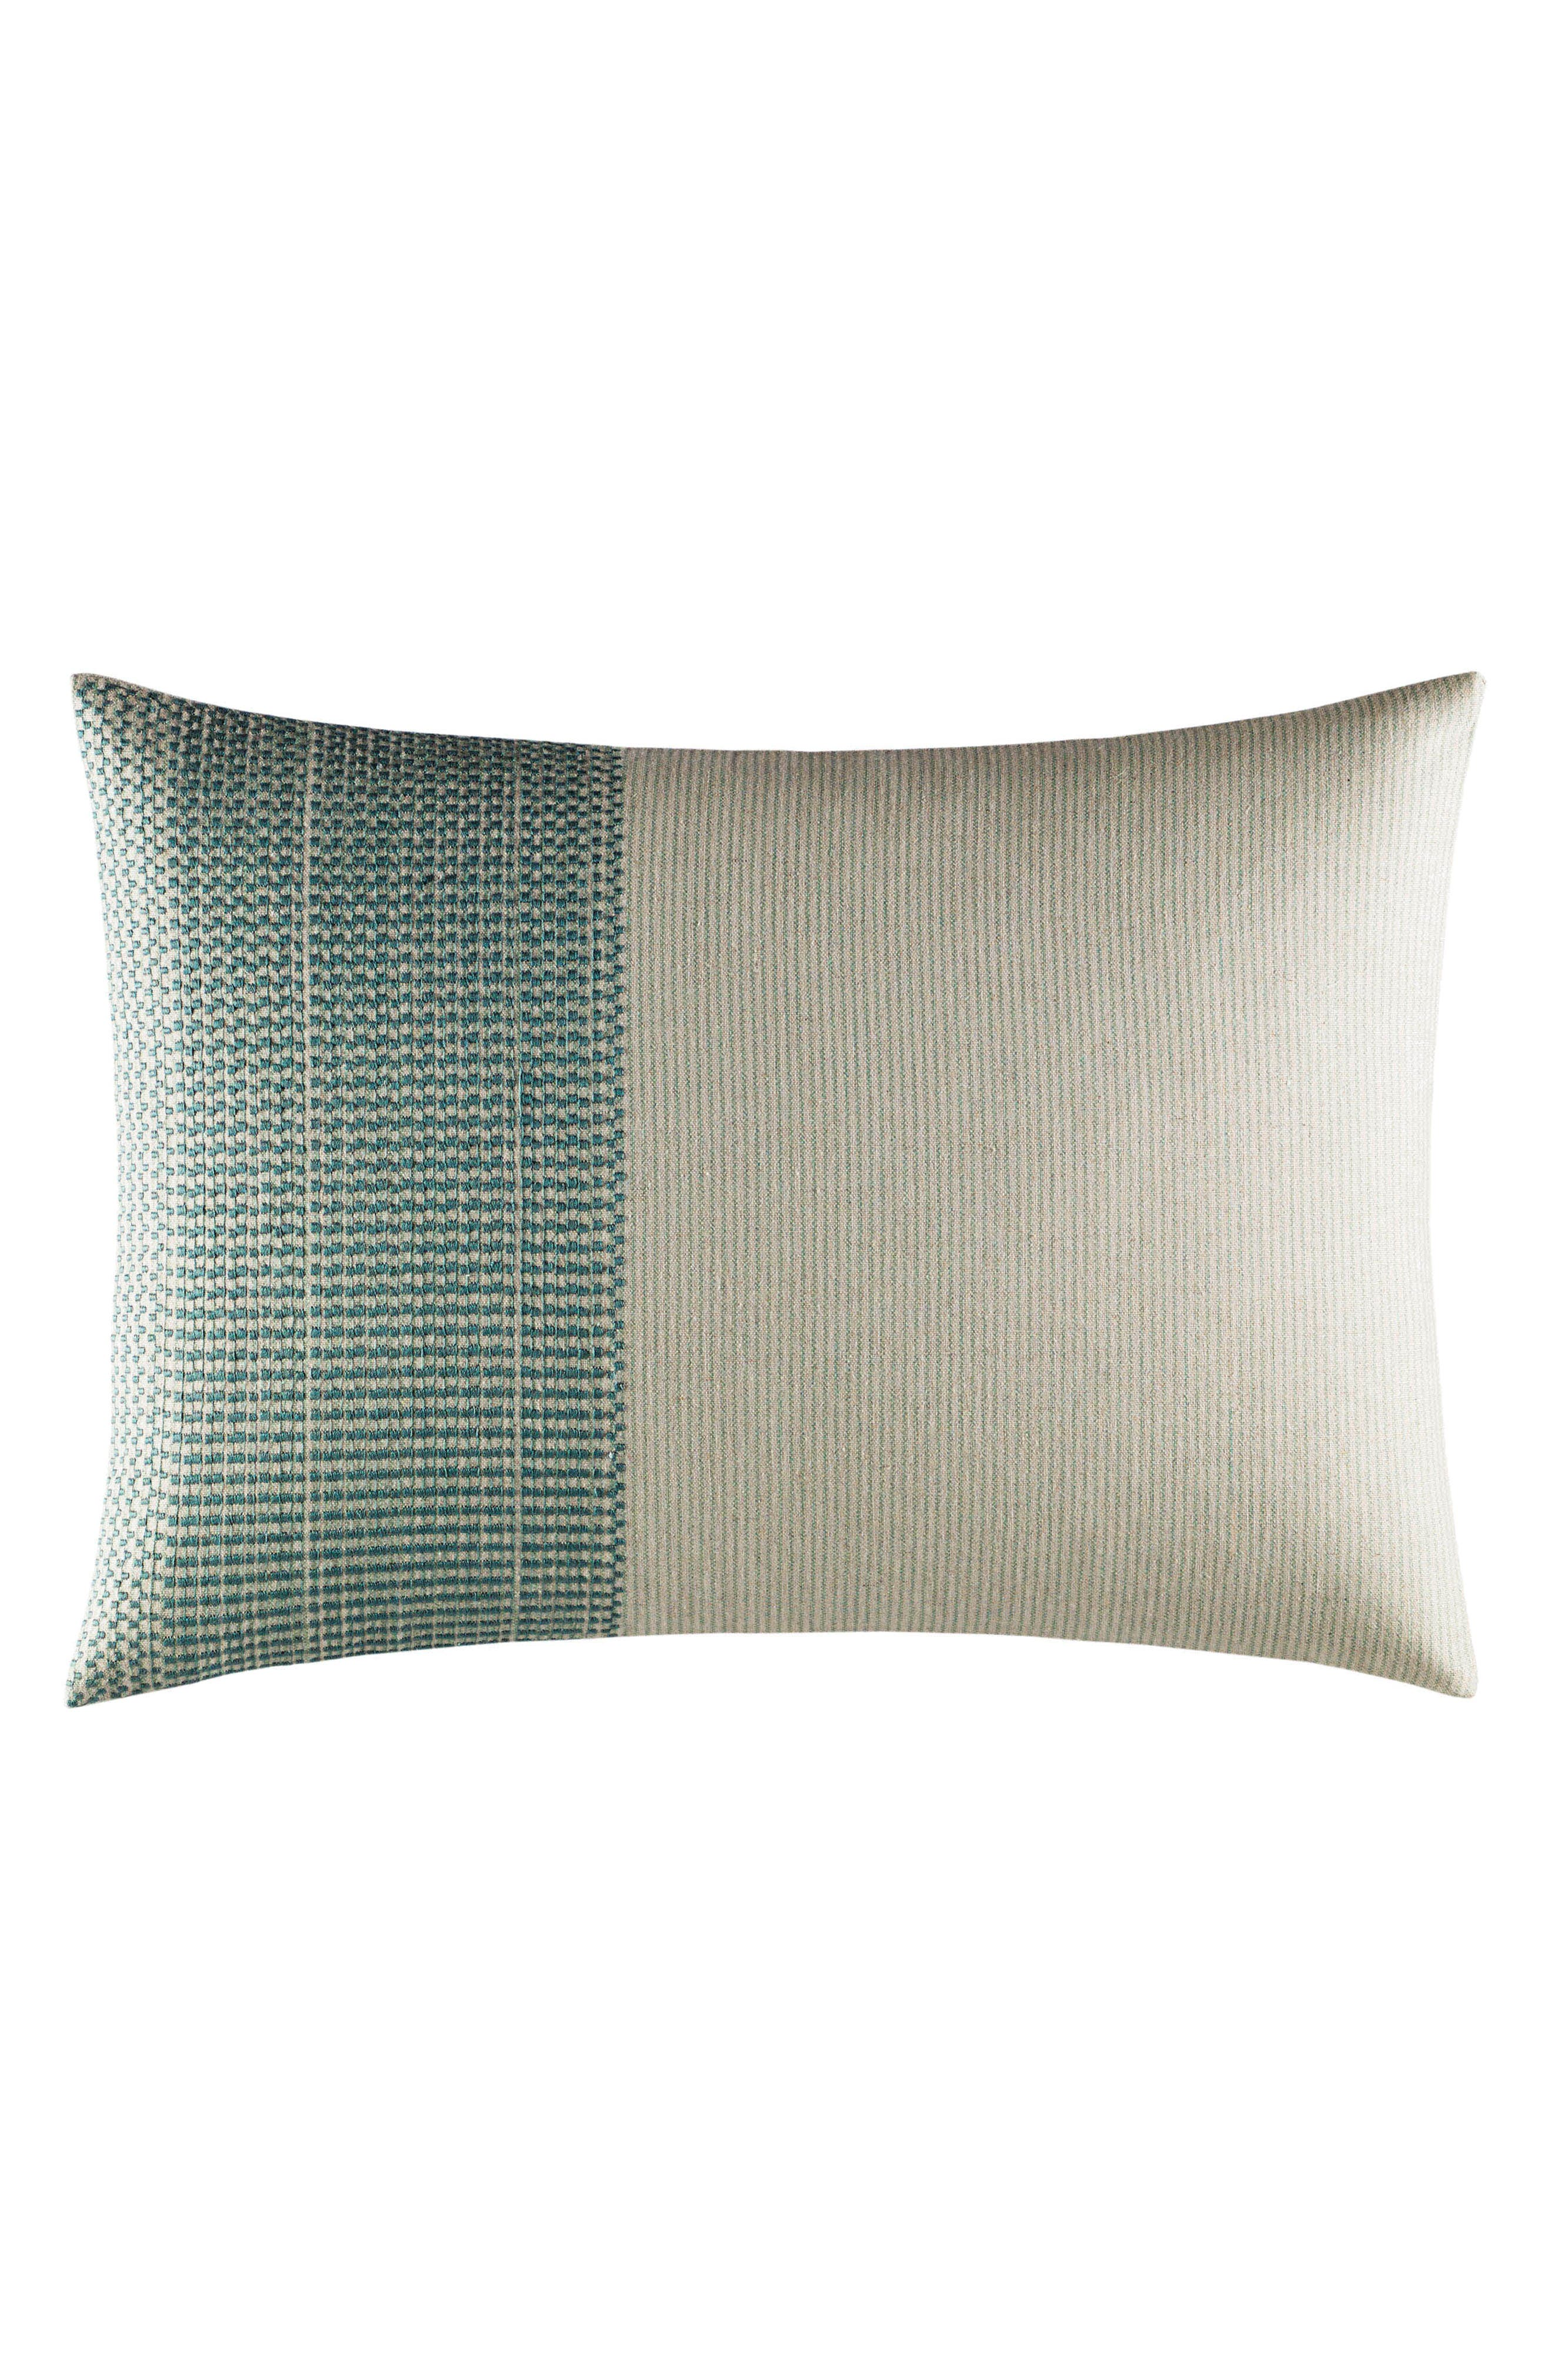 Eden Accent Pillow,                             Main thumbnail 1, color,                             Green